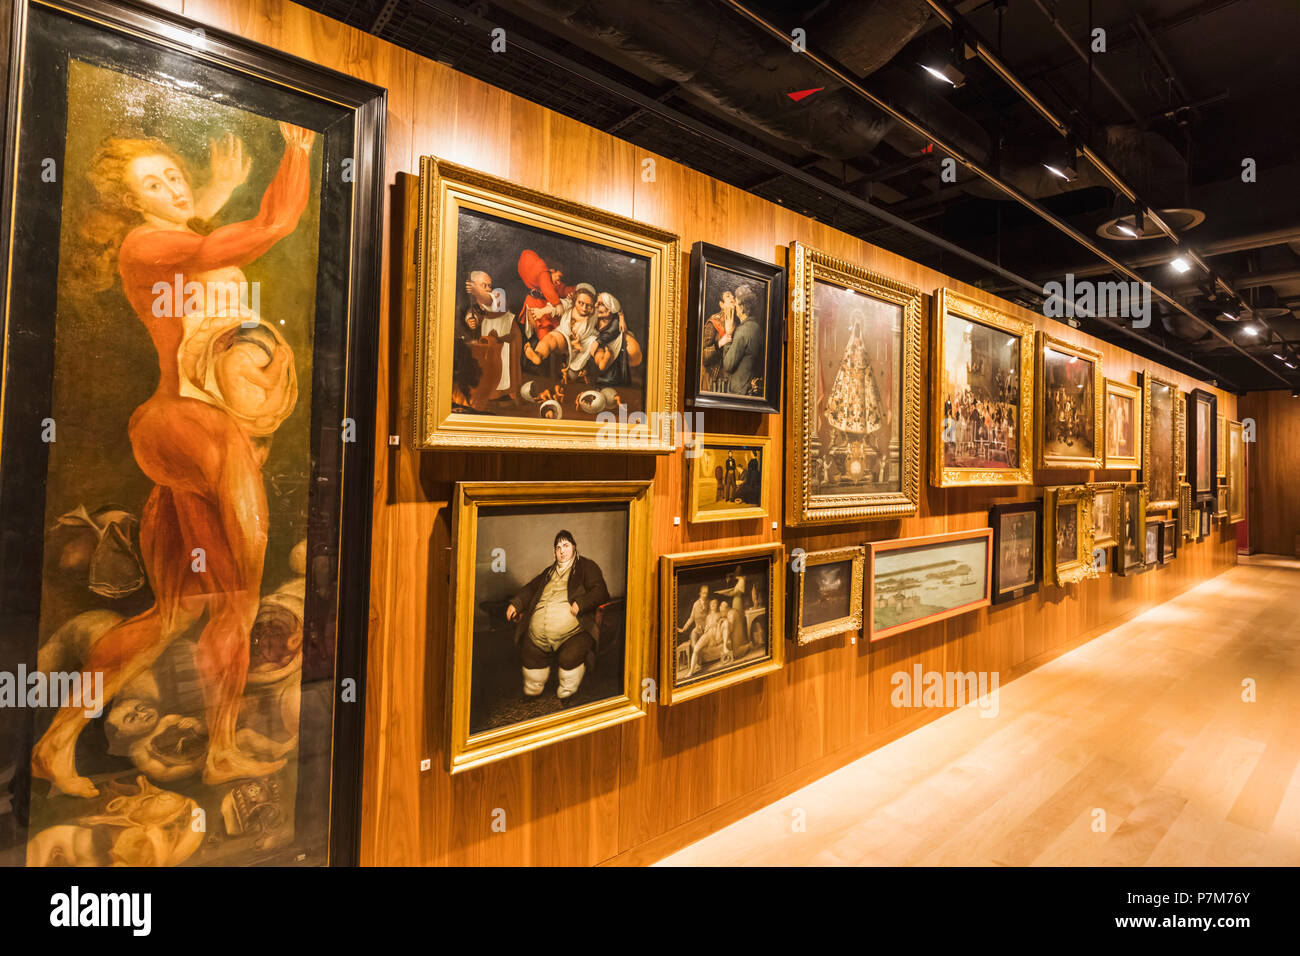 England, London, The Wellcome Collection, Display of Medical Related Artwork - Stock Image